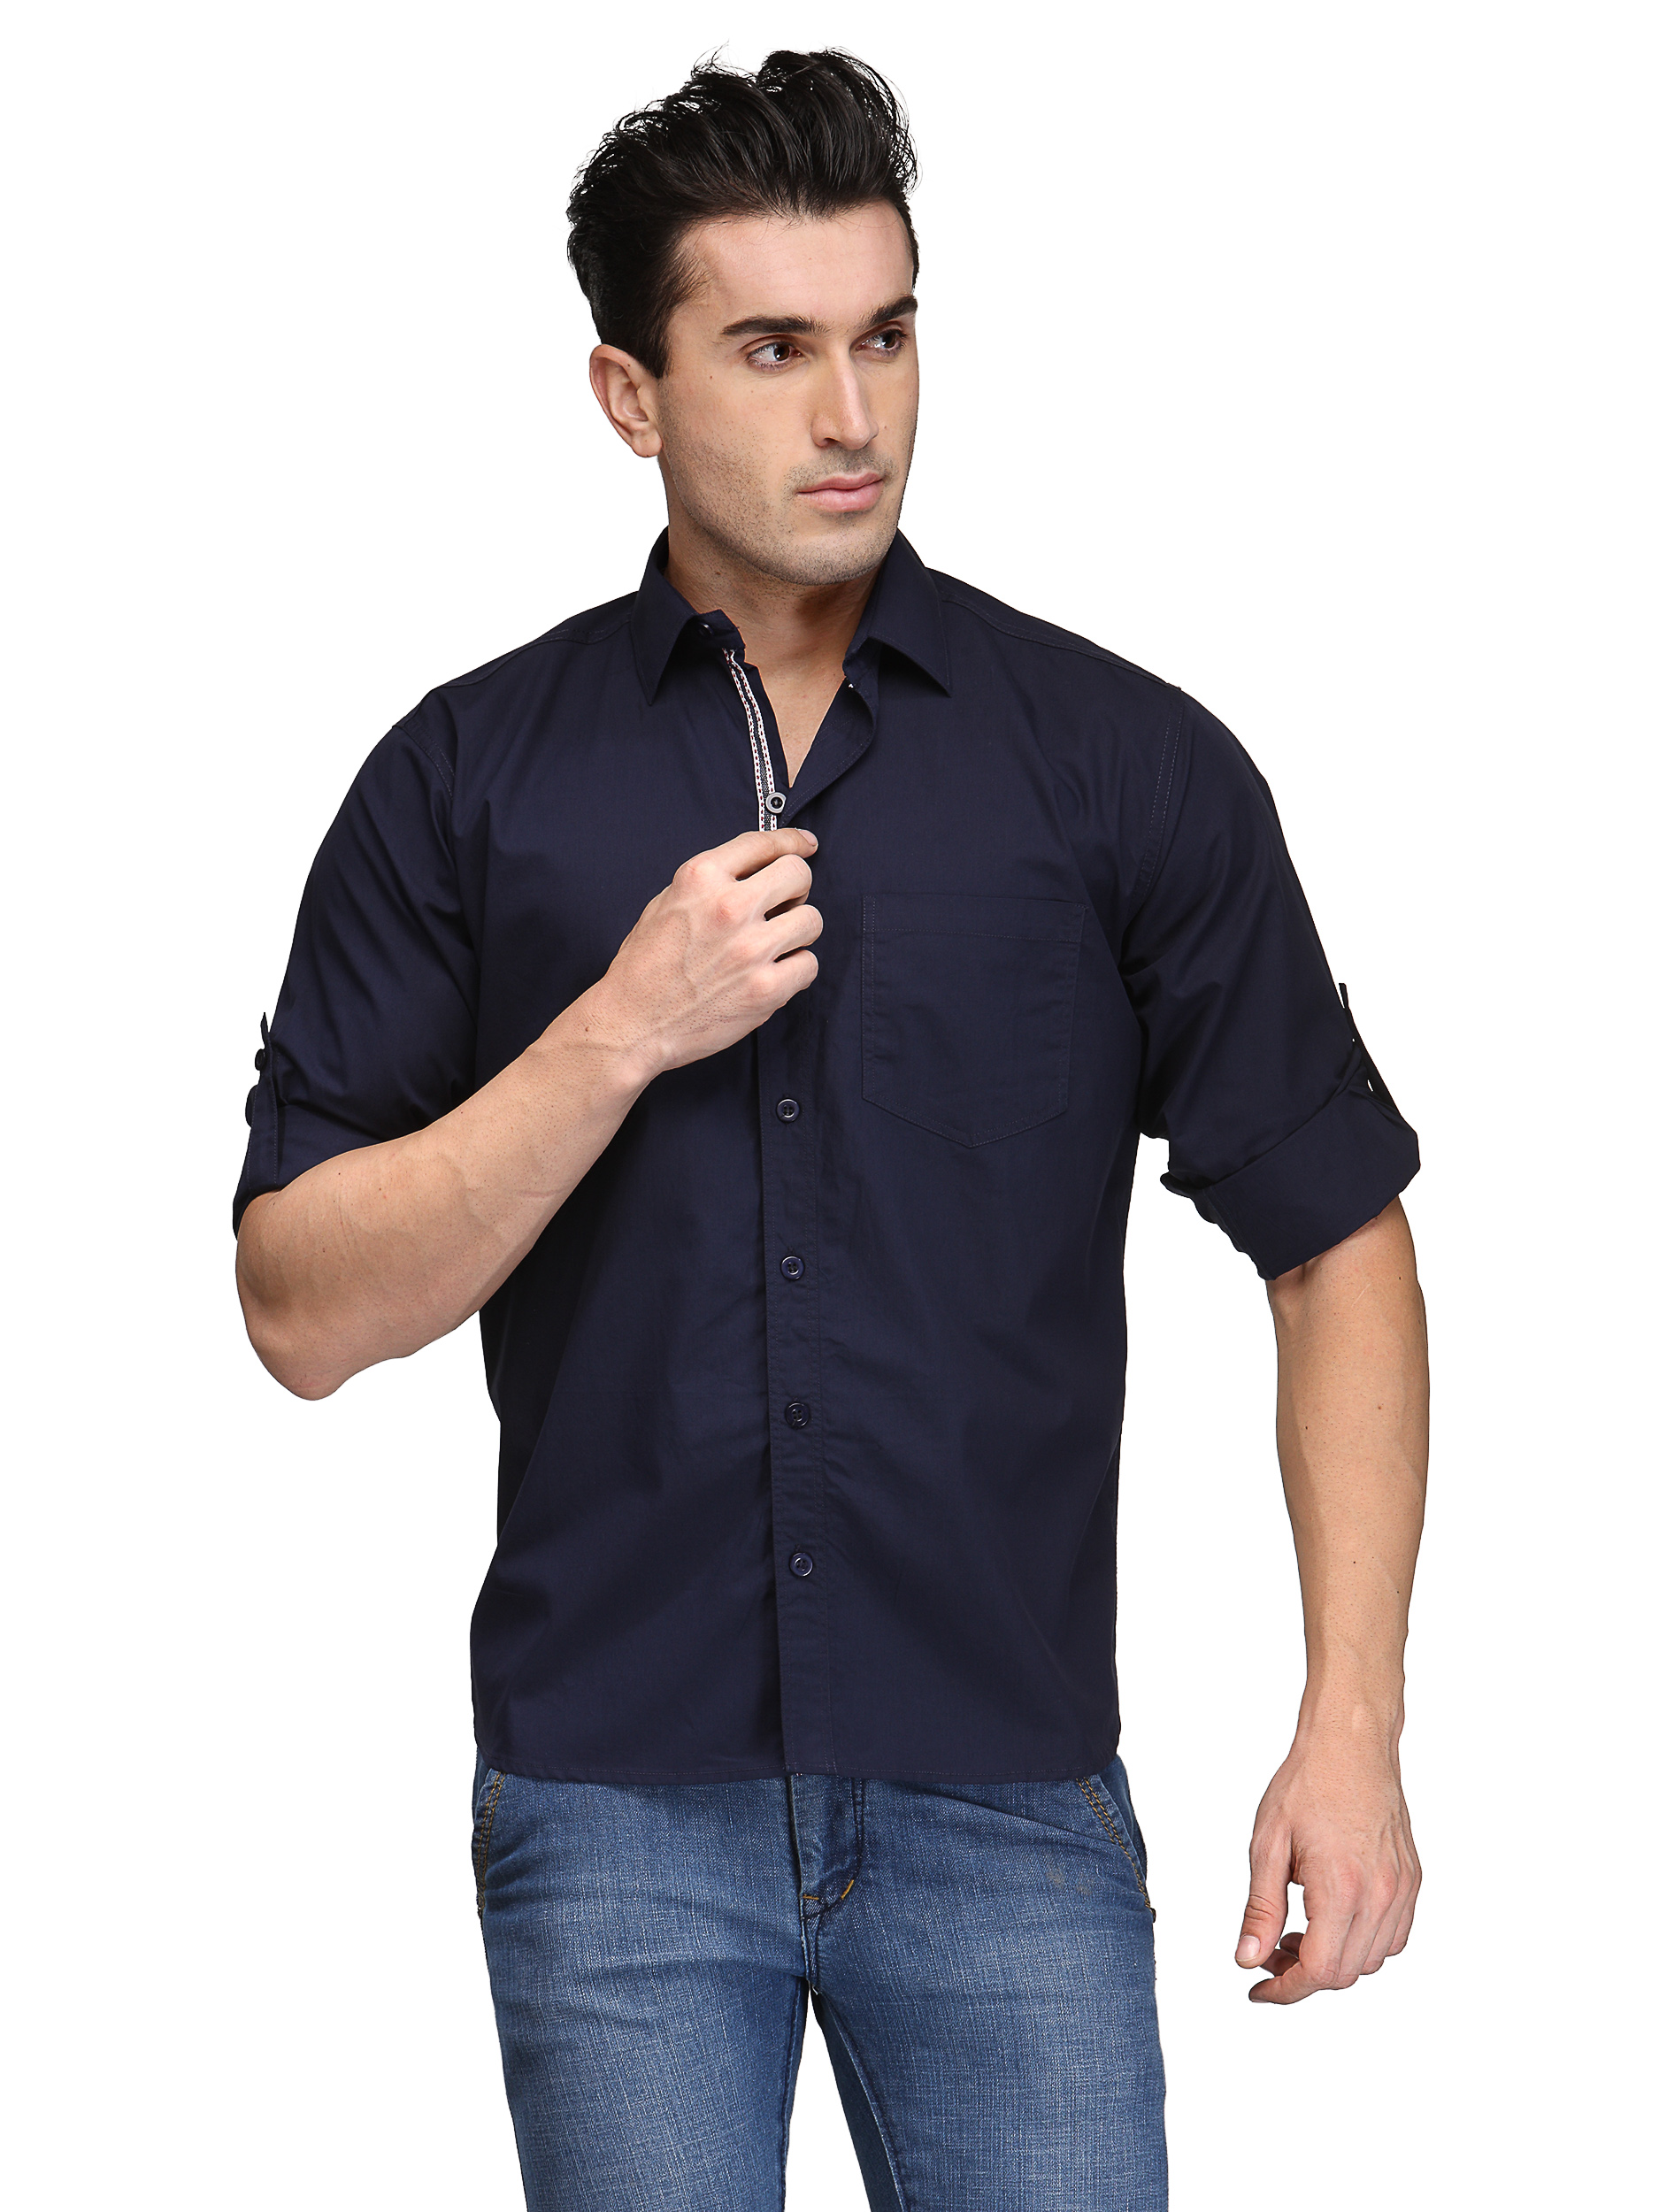 TSX Exquisite Roll Up Sleeve Casual Shirt